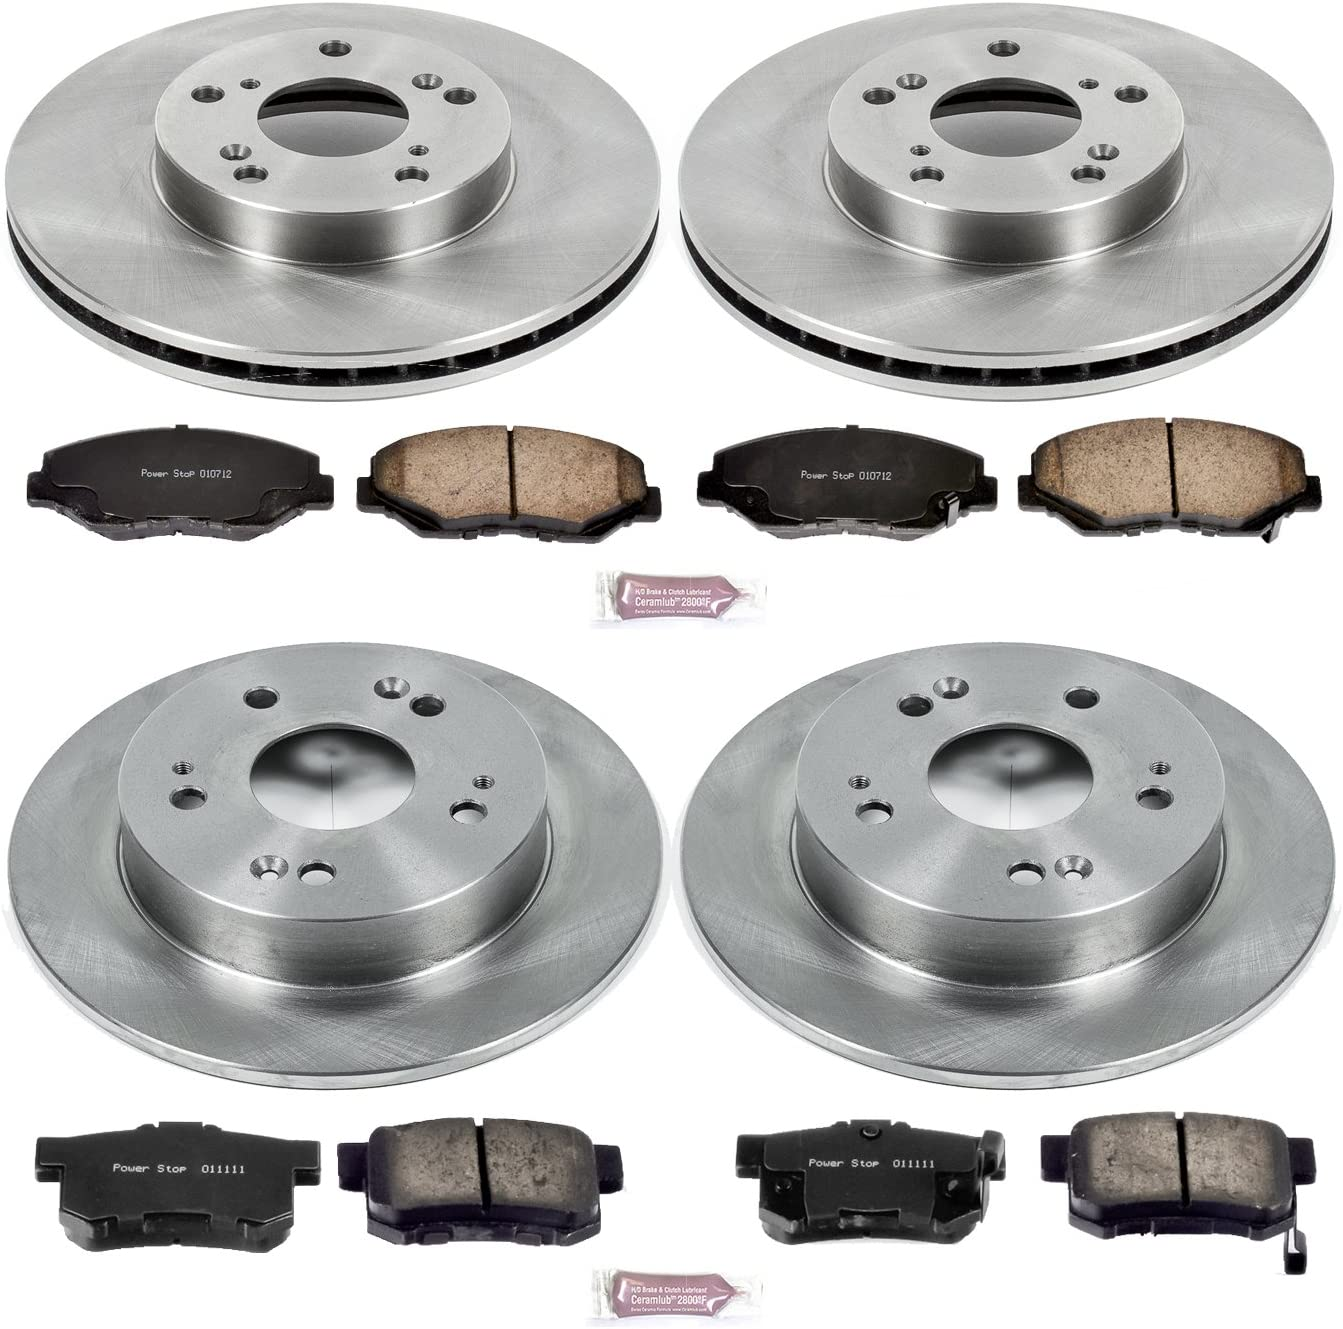 2013 For Acura ILX Front Set Ceramic Brake Pads with 2 Years Manufacturer Warranty Both Left and Right